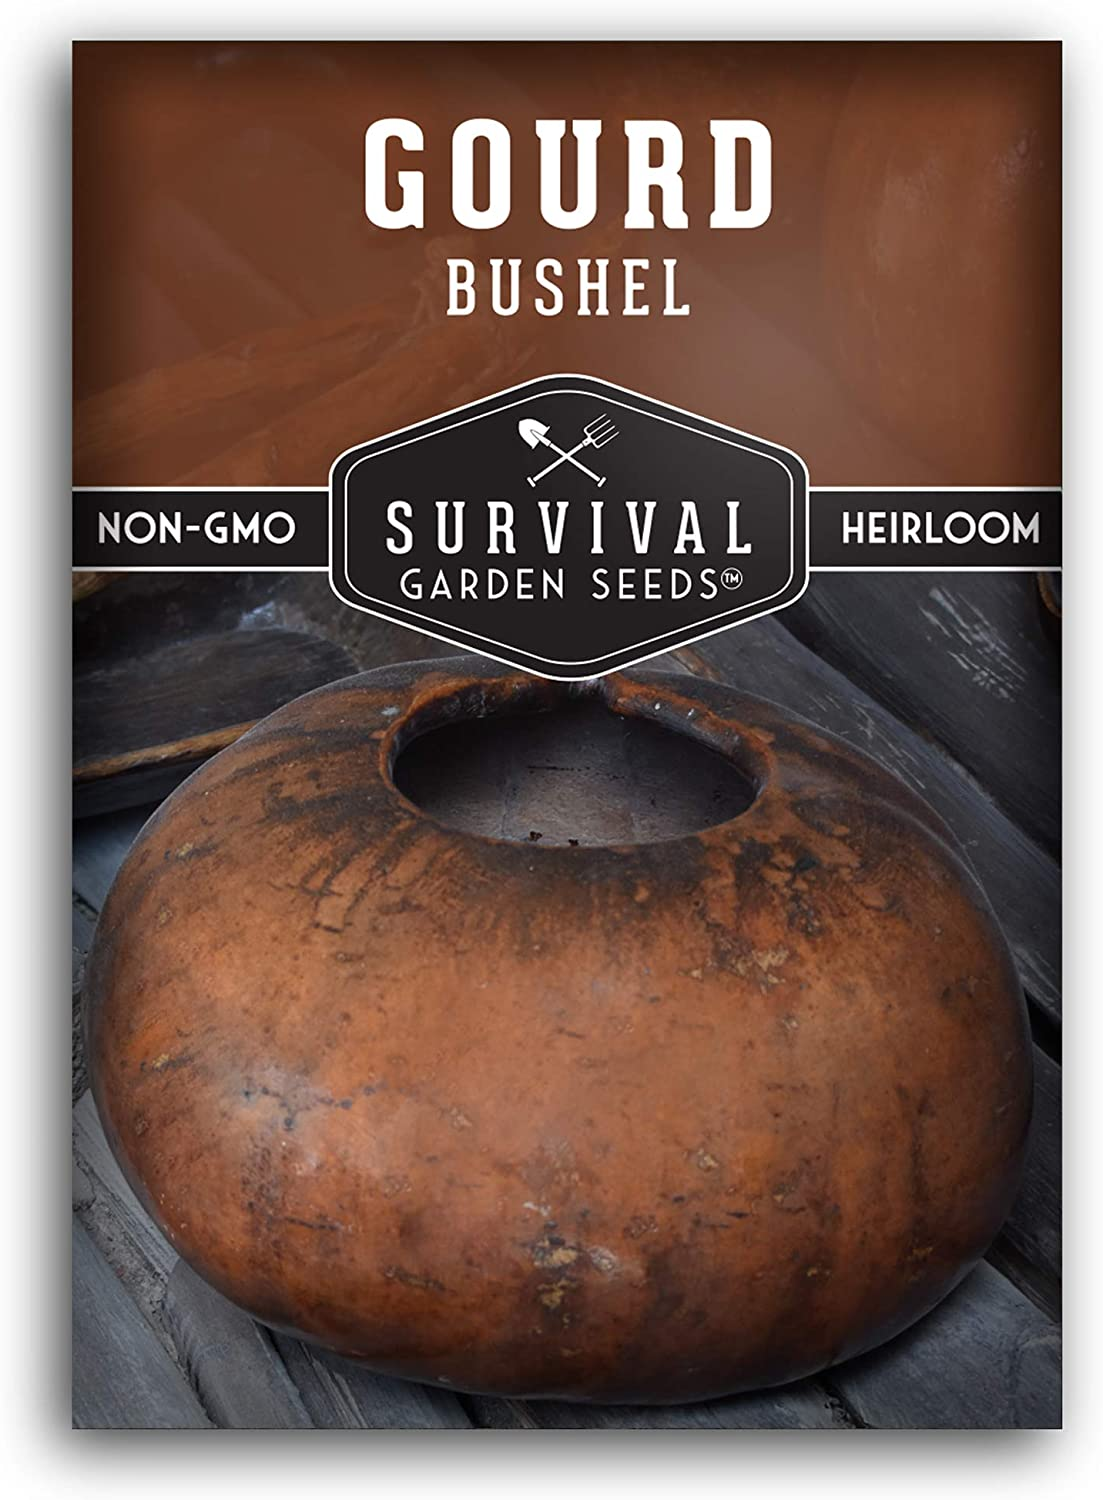 Survival Product Garden Seeds - Bushel Gourd Packet Seed Planting Ranking TOP6 for